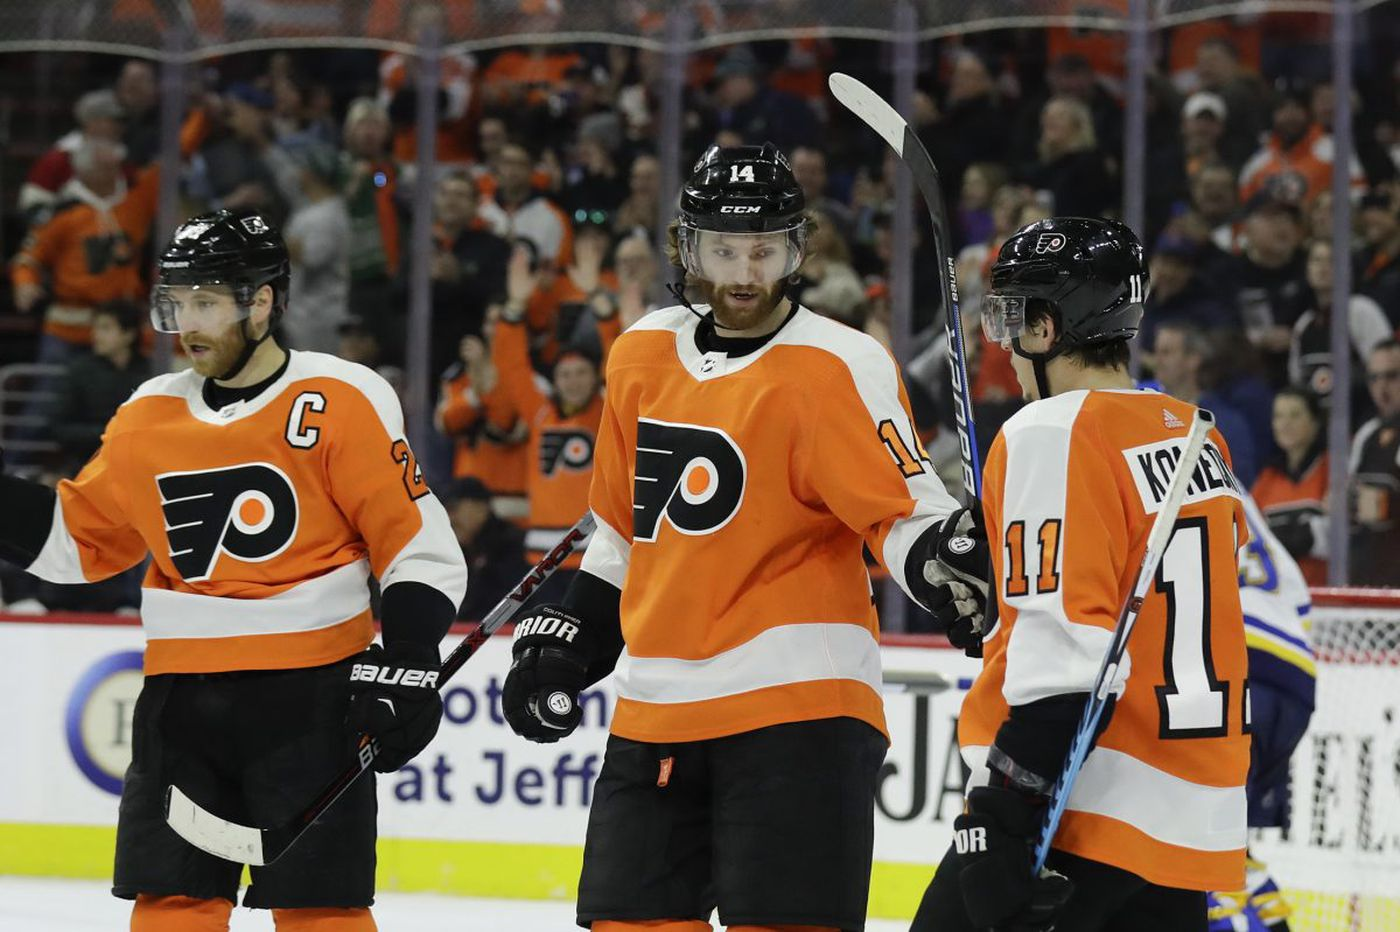 Flyers' Claude Giroux back among NHL's elite | Sam Carchidi